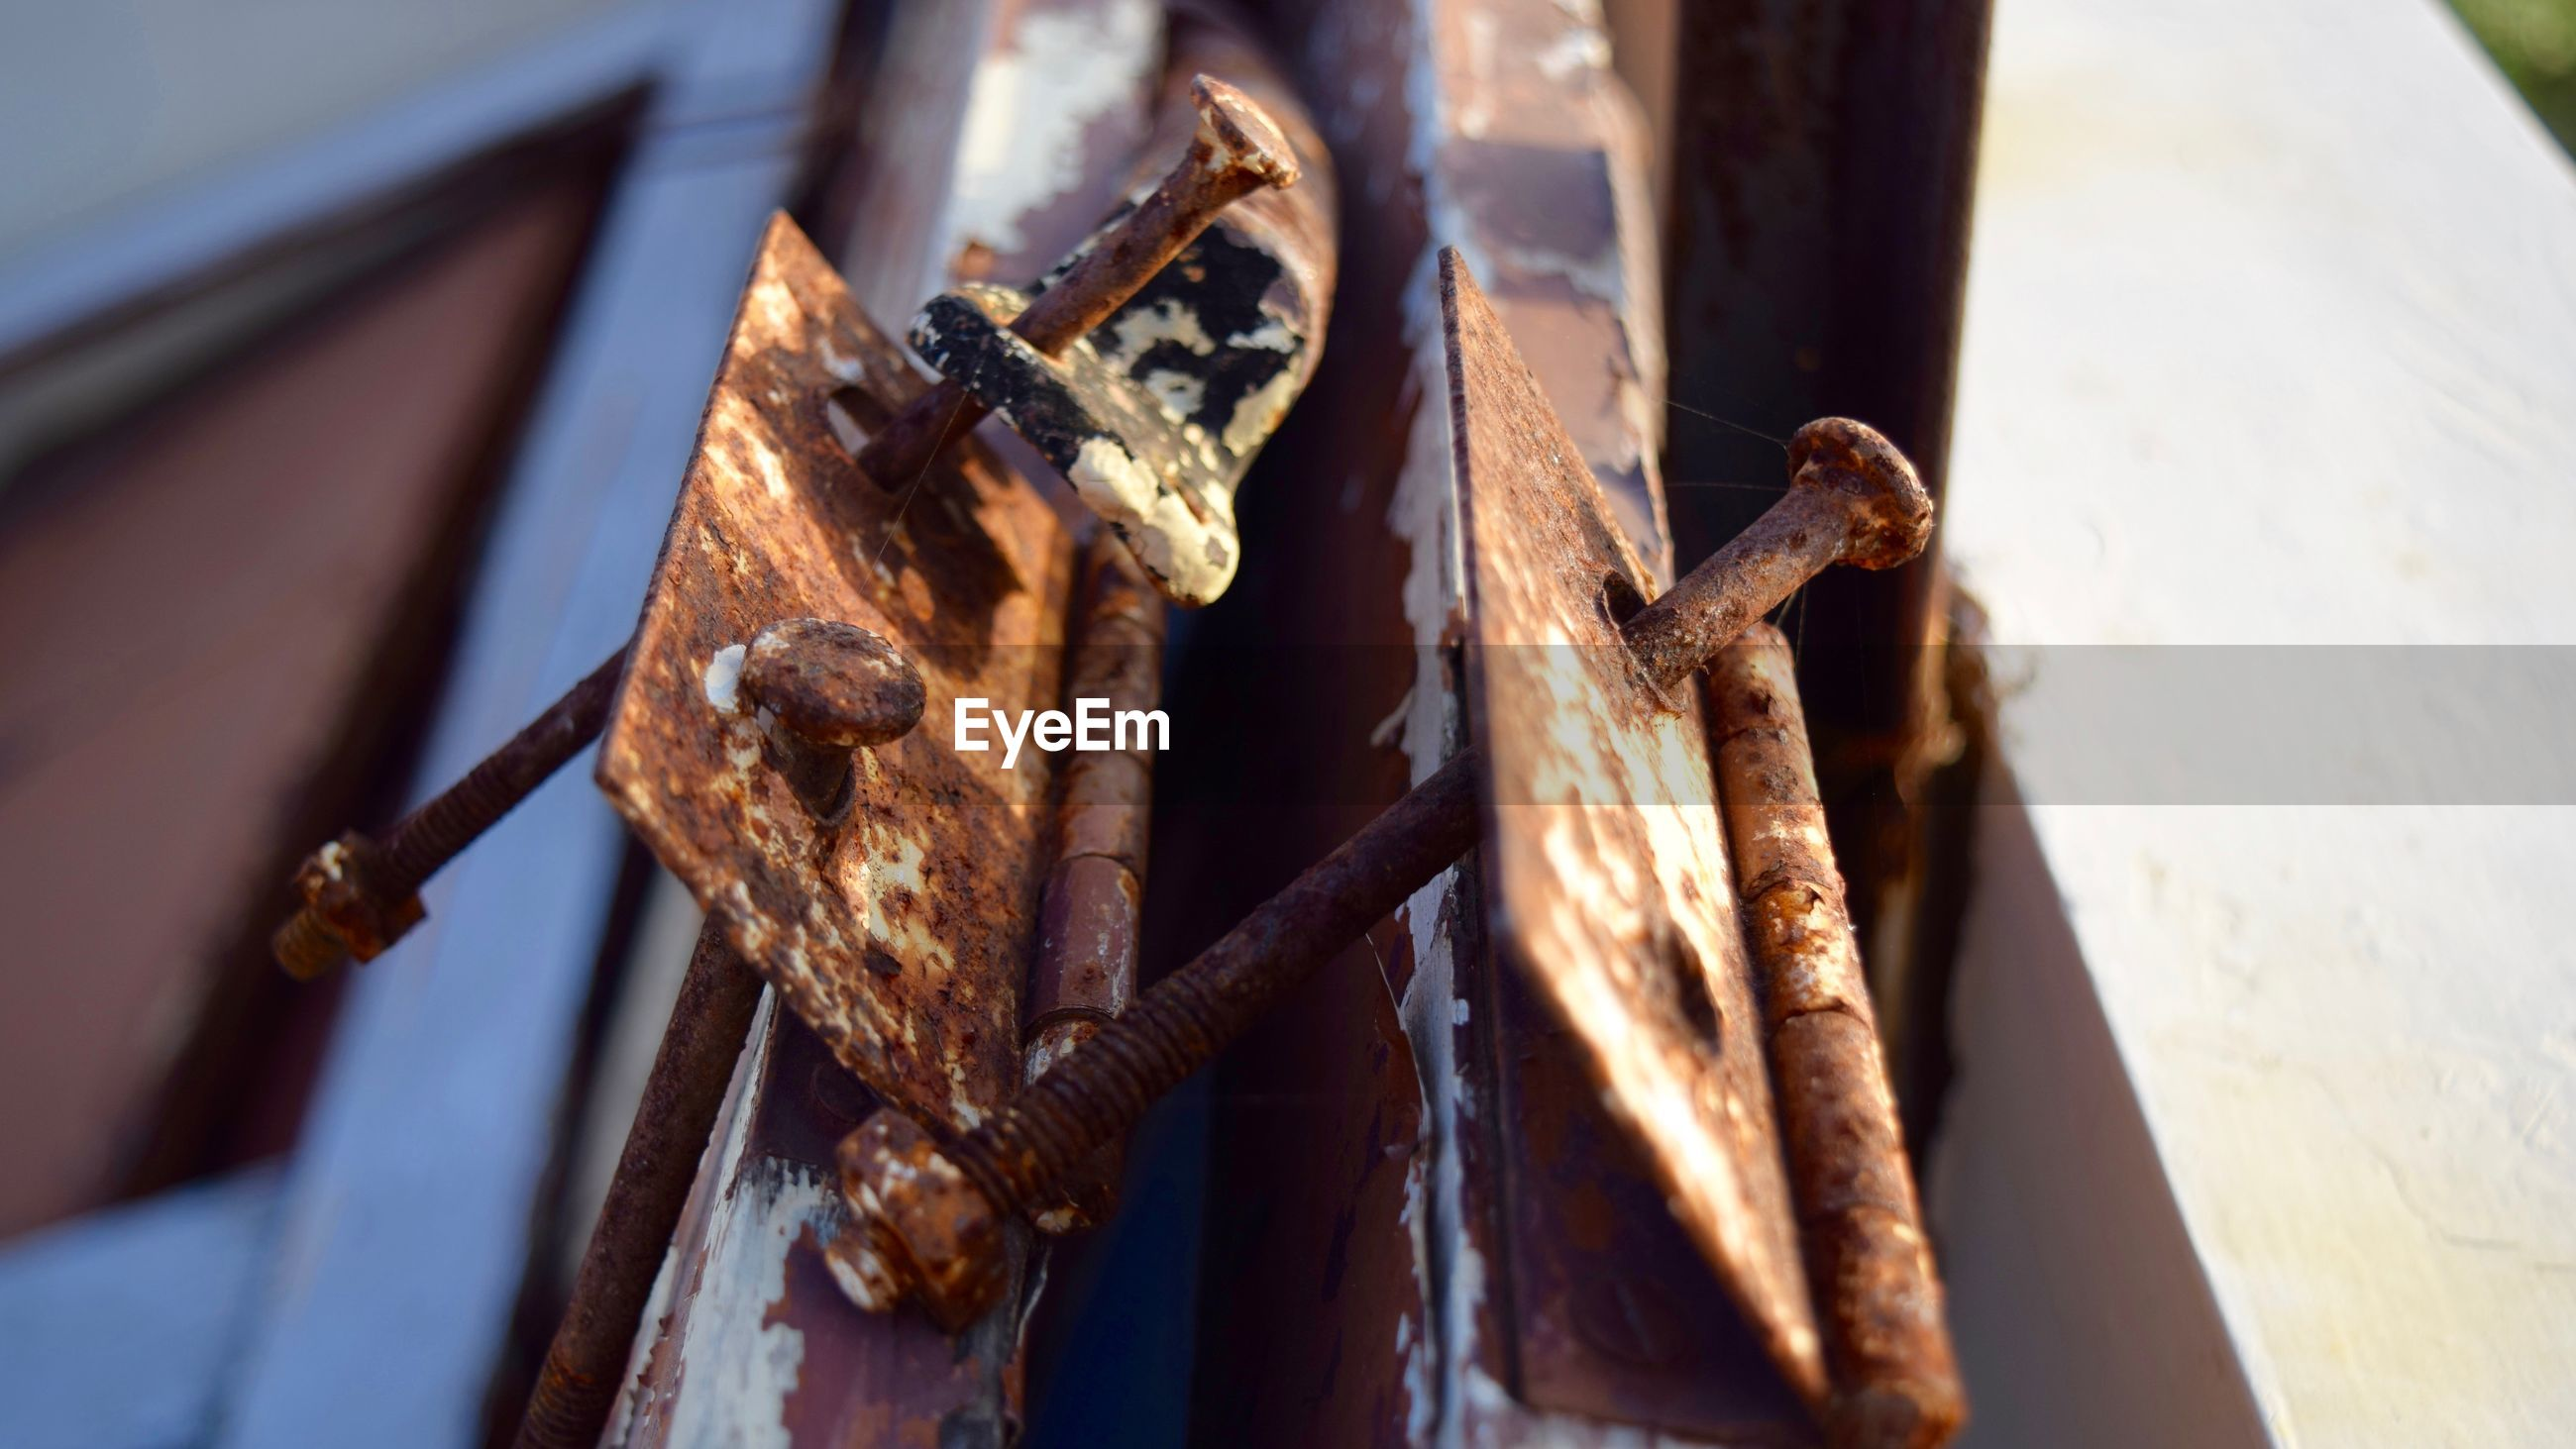 Low angle view of rusty metal